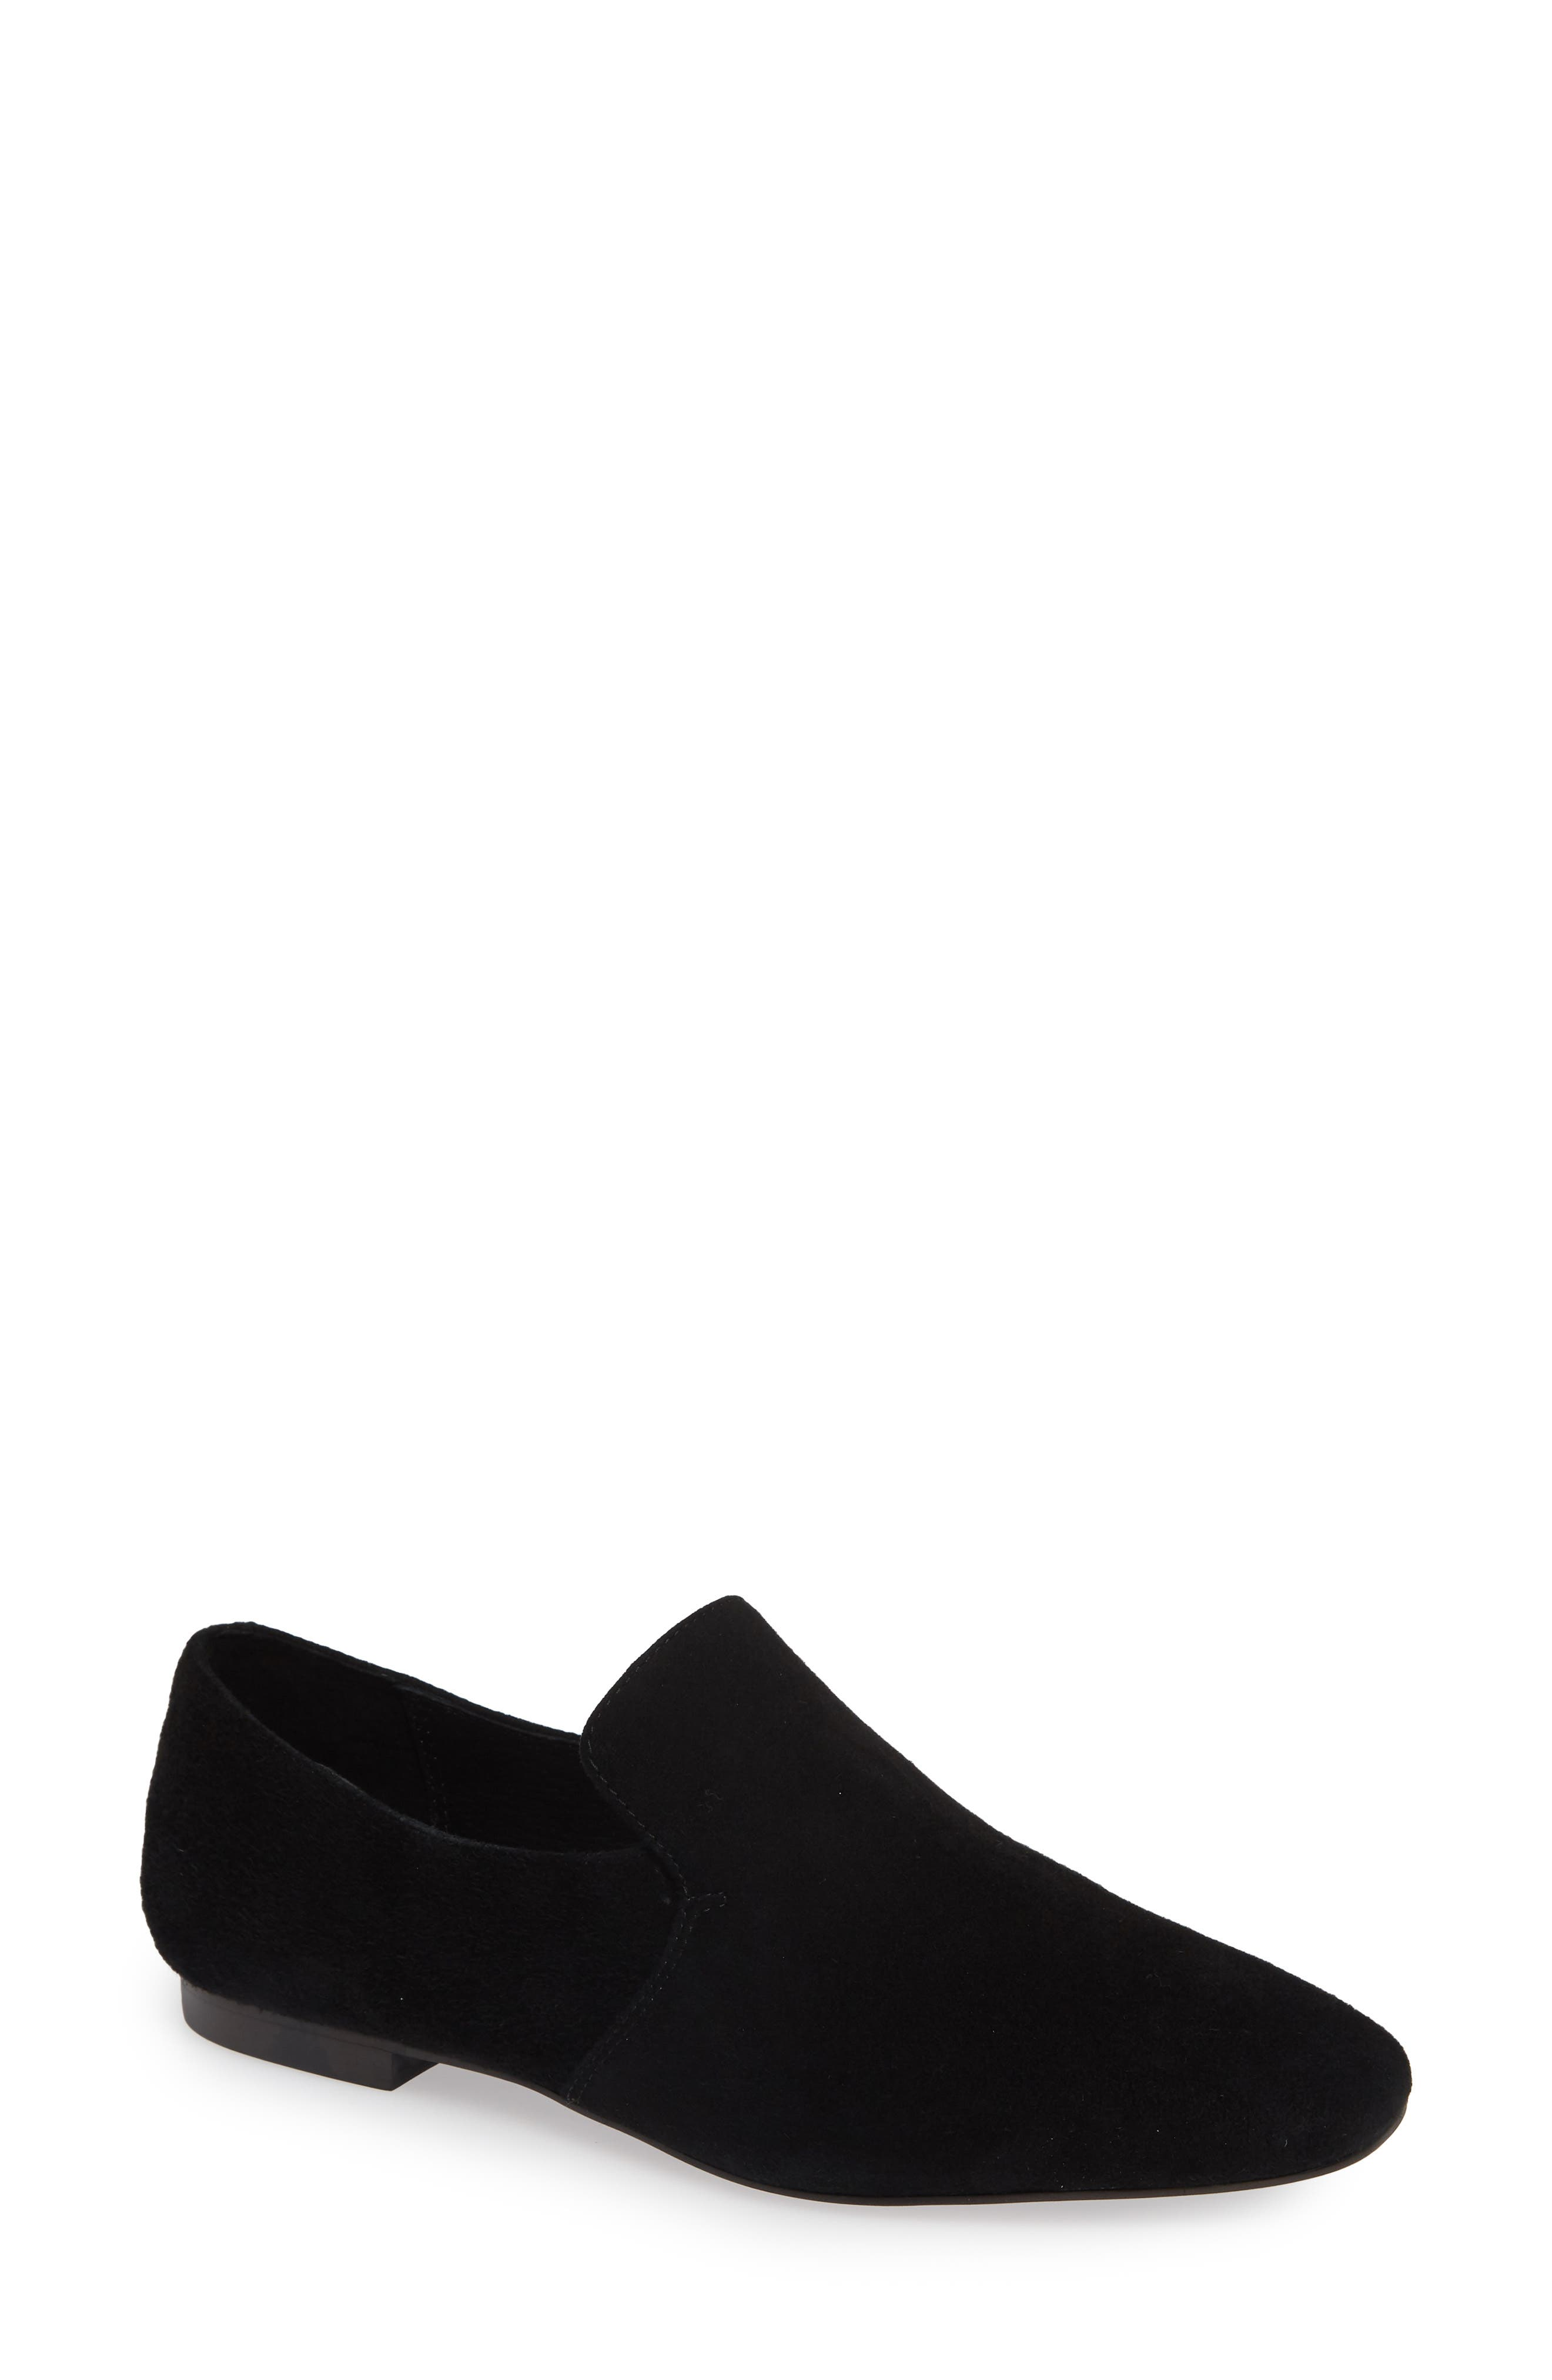 Priestly Loafer,                             Main thumbnail 1, color,                             BLACK SUEDE